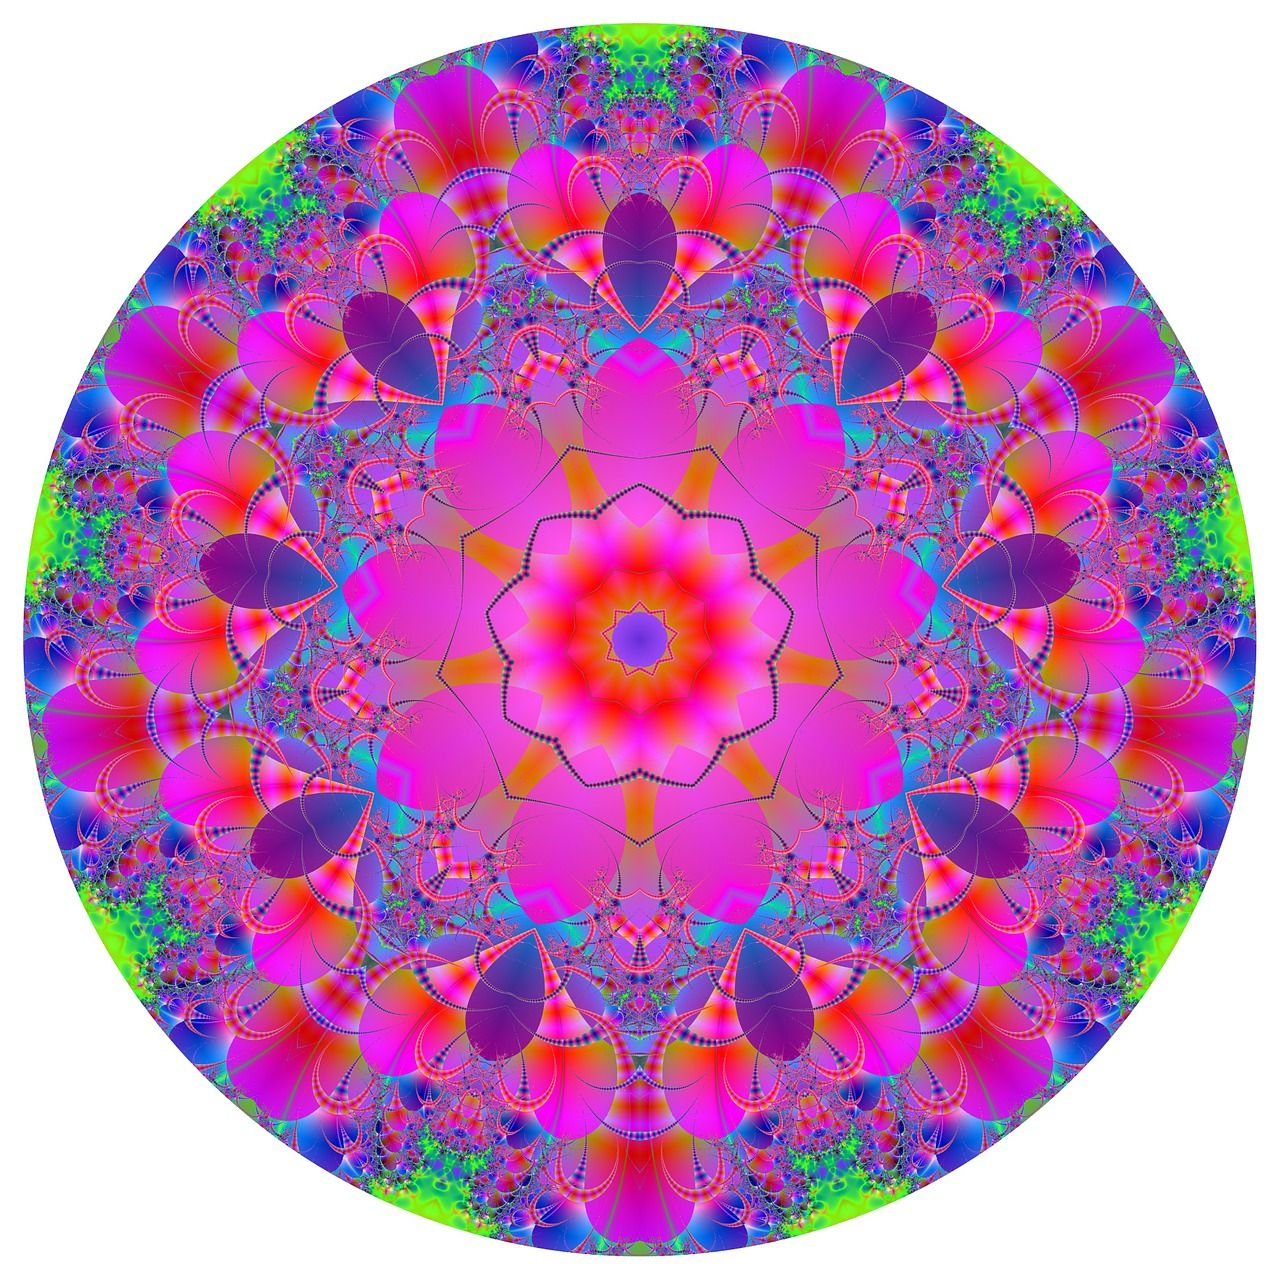 In my book I mention using Mandalas for therapy and relaxation